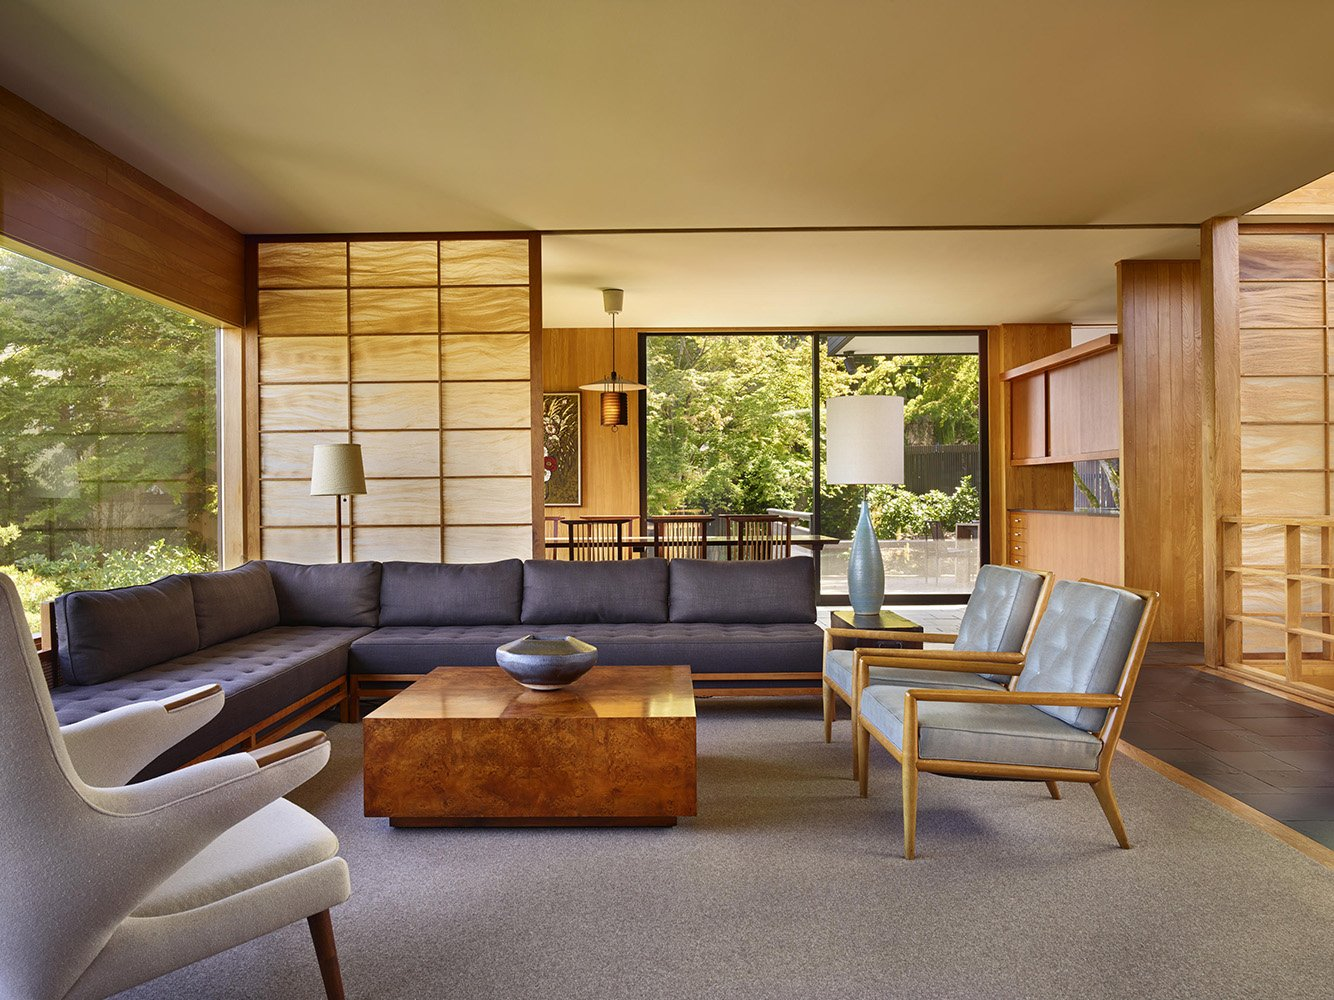 Many of the home's original furnishings were reupholstered including a sectional in the living room